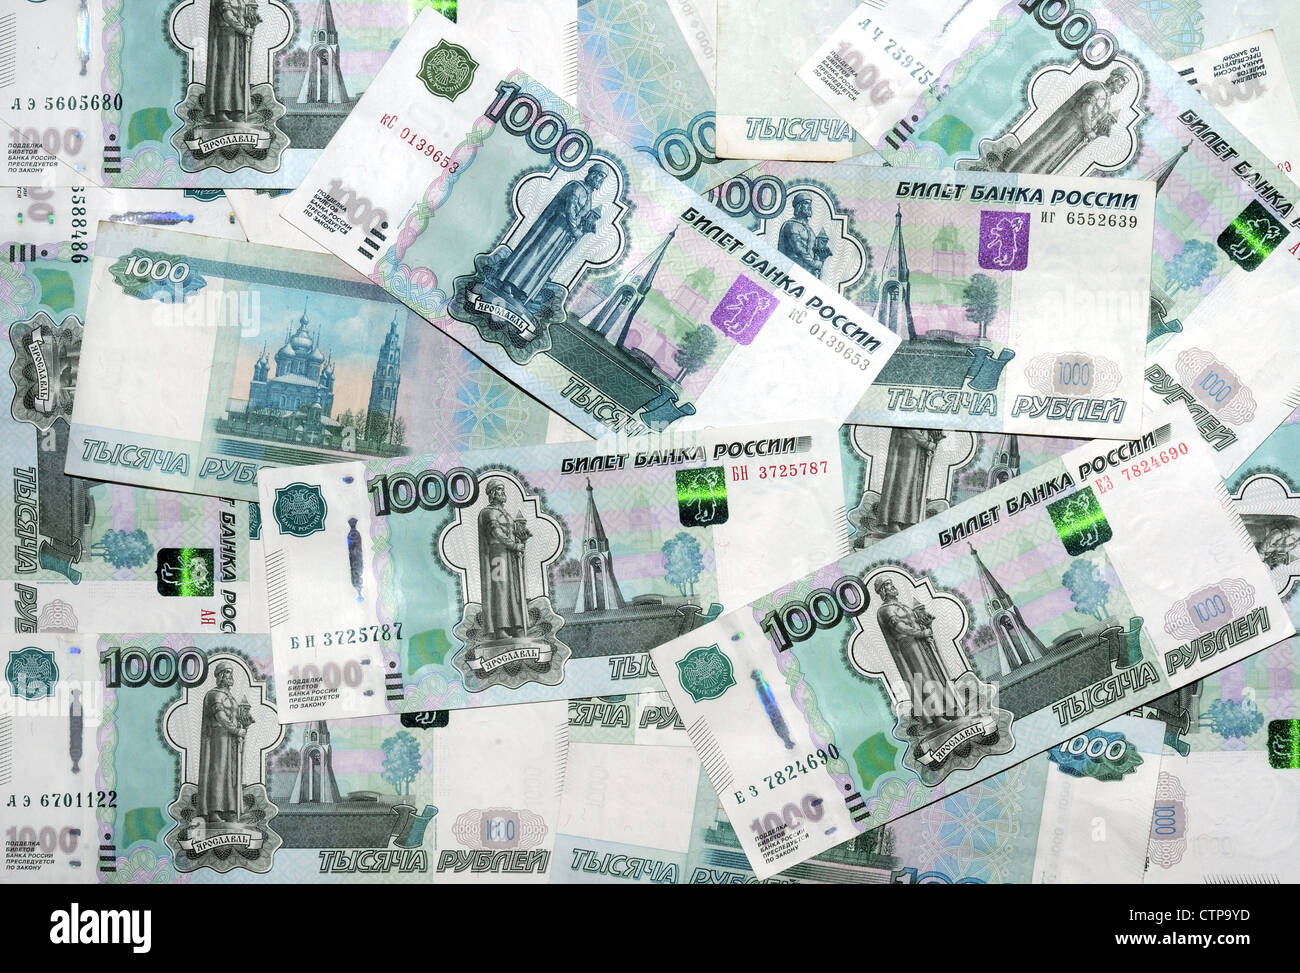 banknotes 1000 Russian rubles Stock Photo